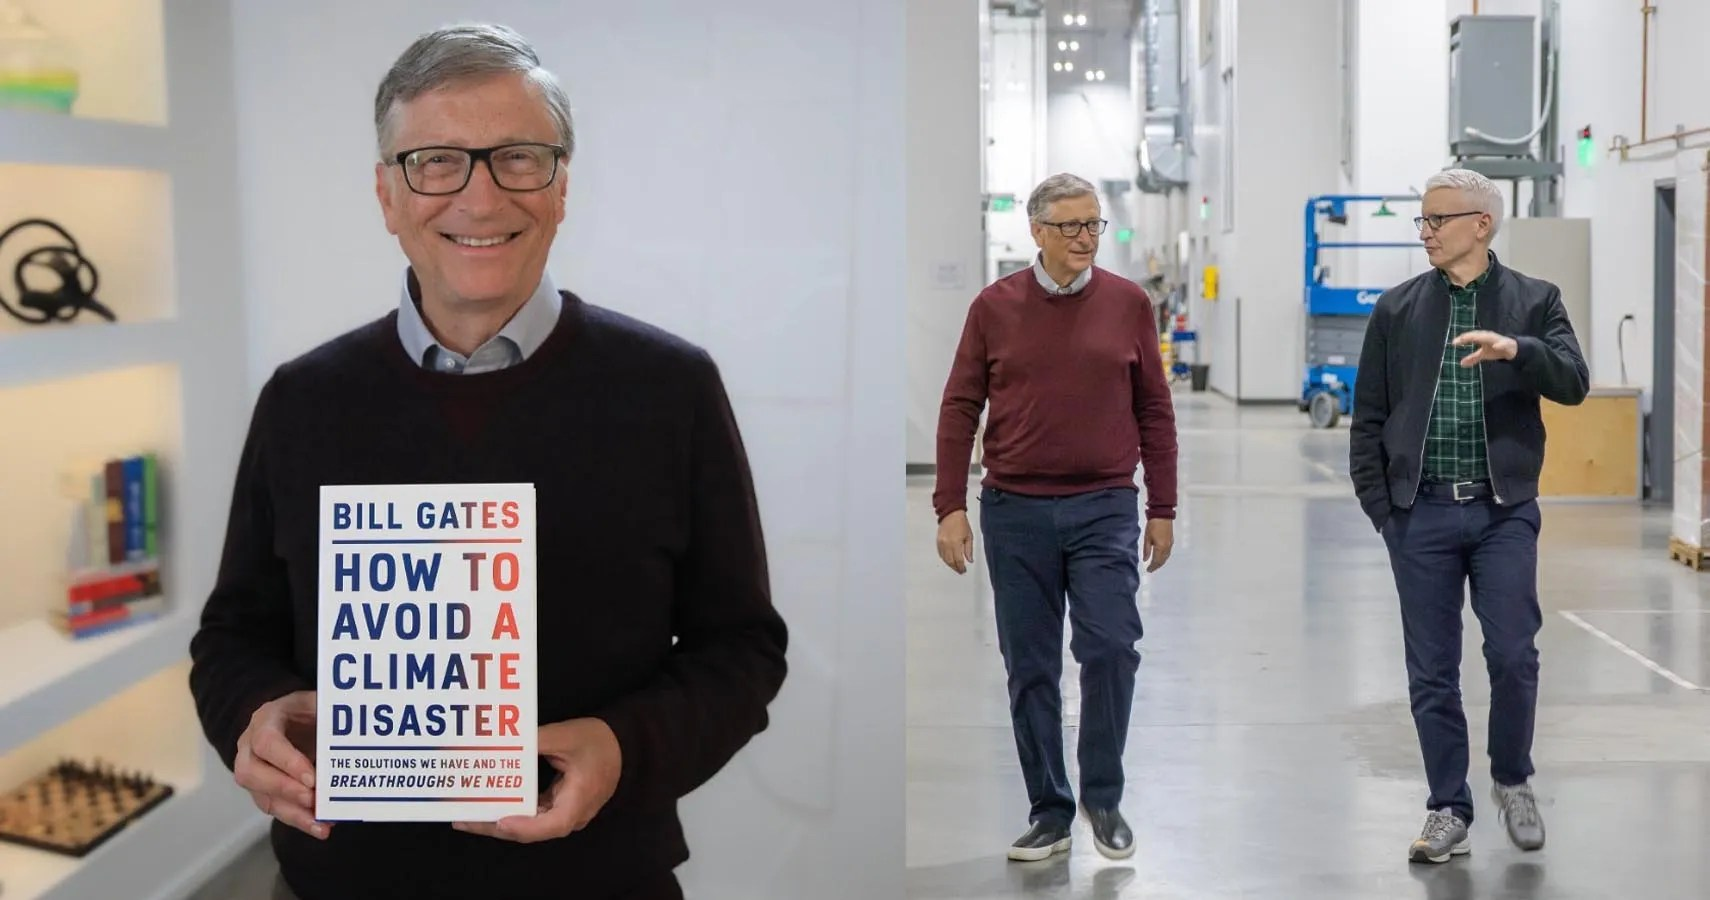 Bill Gates detailed solution to climate change